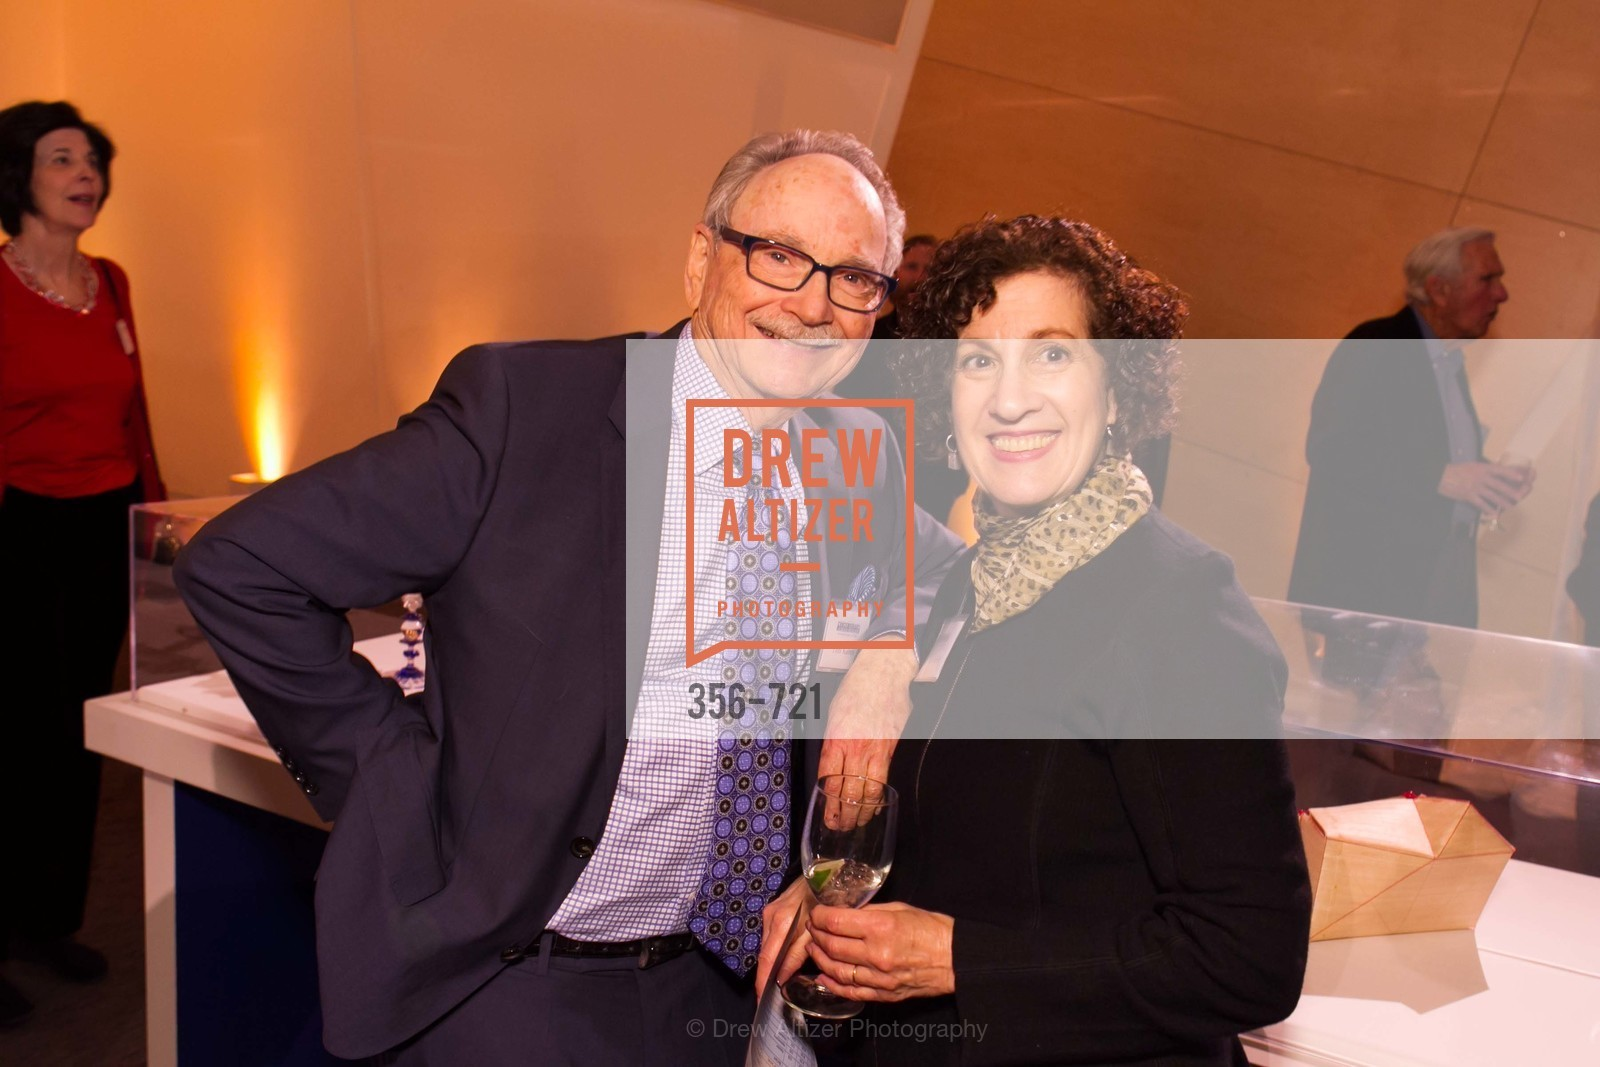 Tom Kasten, Kendra Kasten, The 2015 Dorothy Saxe Invitational Celebration at the JEWISH MUSEUM, US, May 13th, 2015,Drew Altizer, Drew Altizer Photography, full-service agency, private events, San Francisco photographer, photographer california